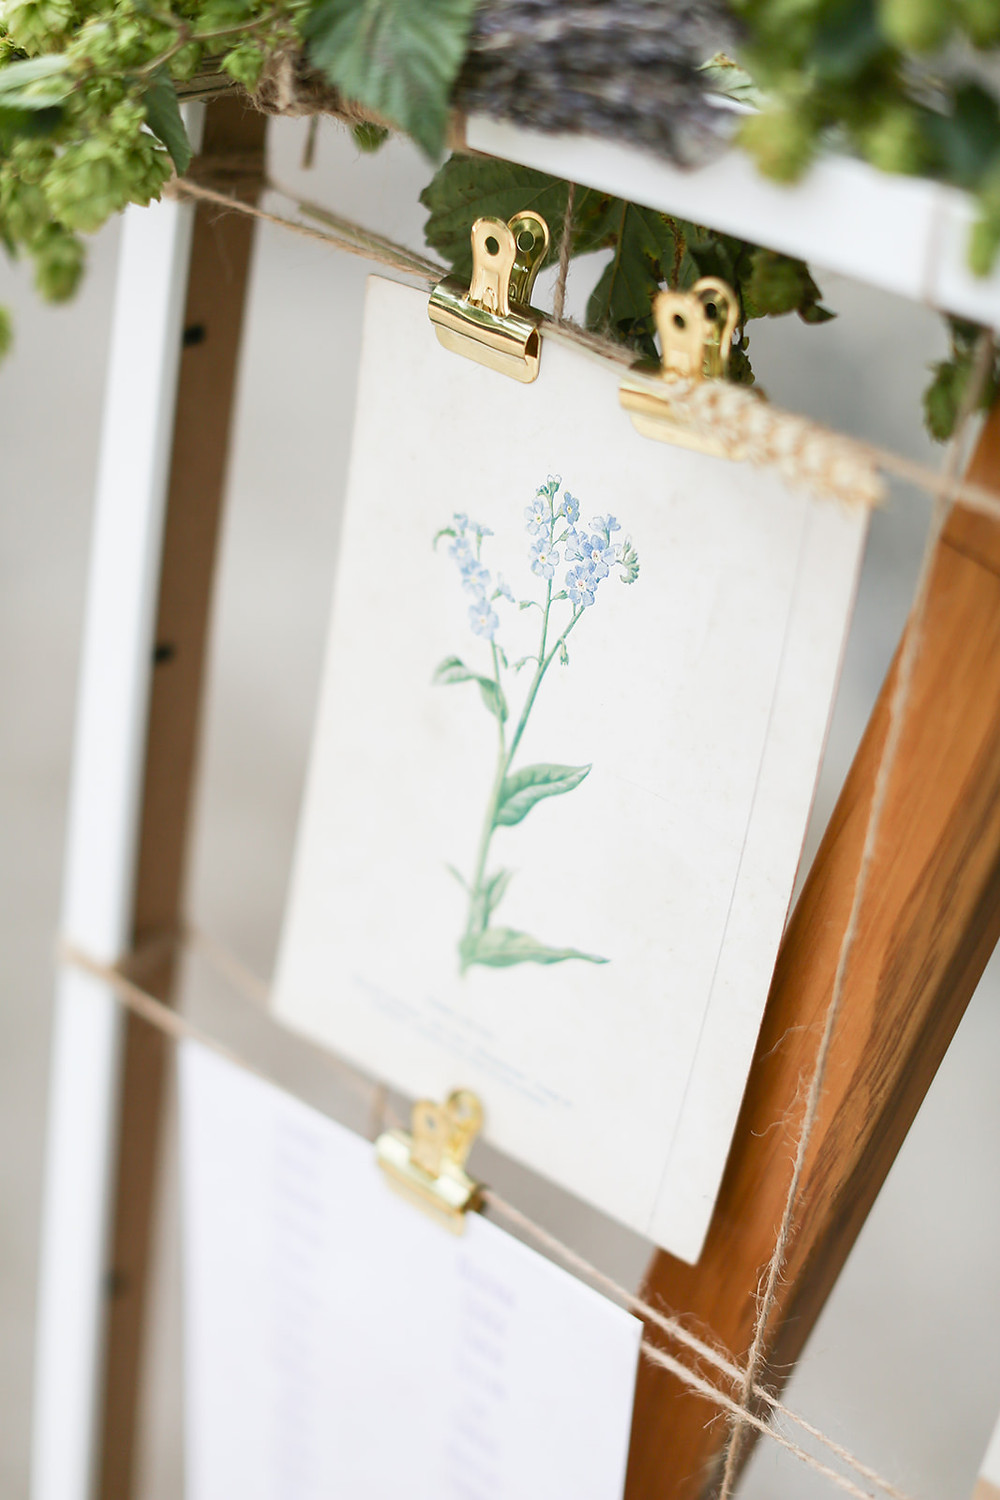 Botanical seating plan inspiration for a wedding. Botanical drawings pegged to hessian string on a wooden easel.